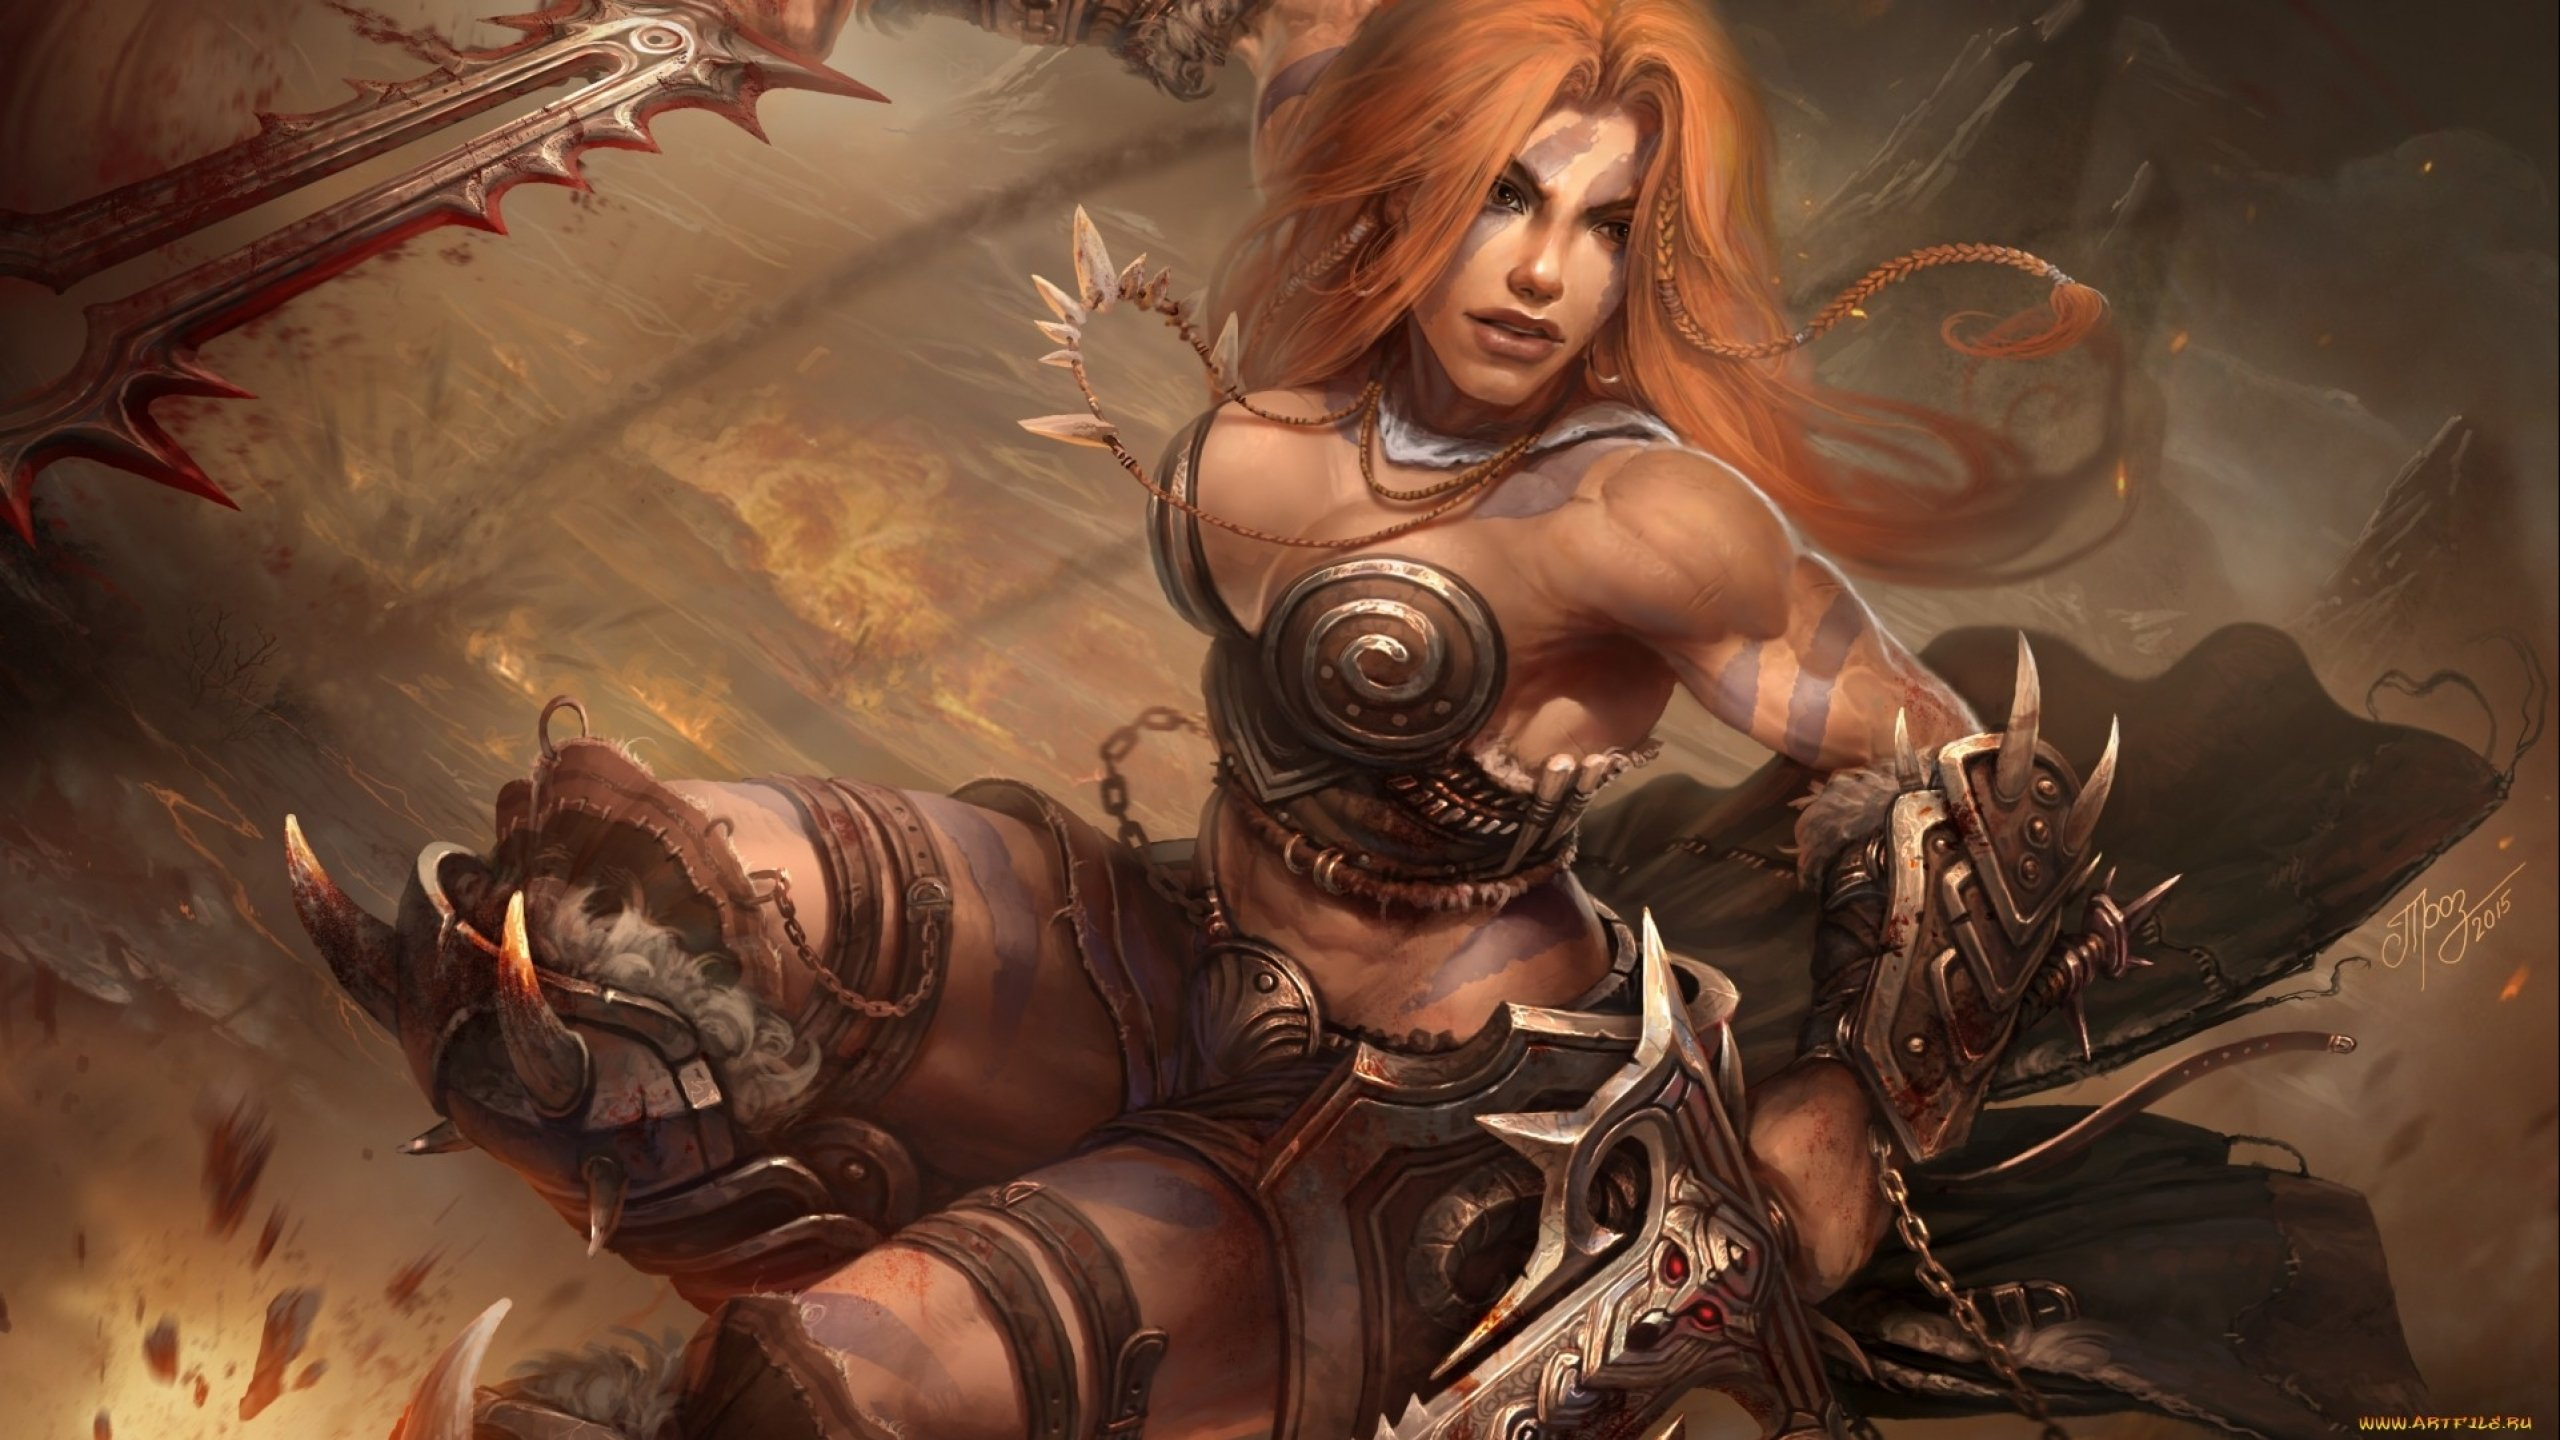 Fantasy artwork art warrior women woman female wallpaper | 2560x1440 ...